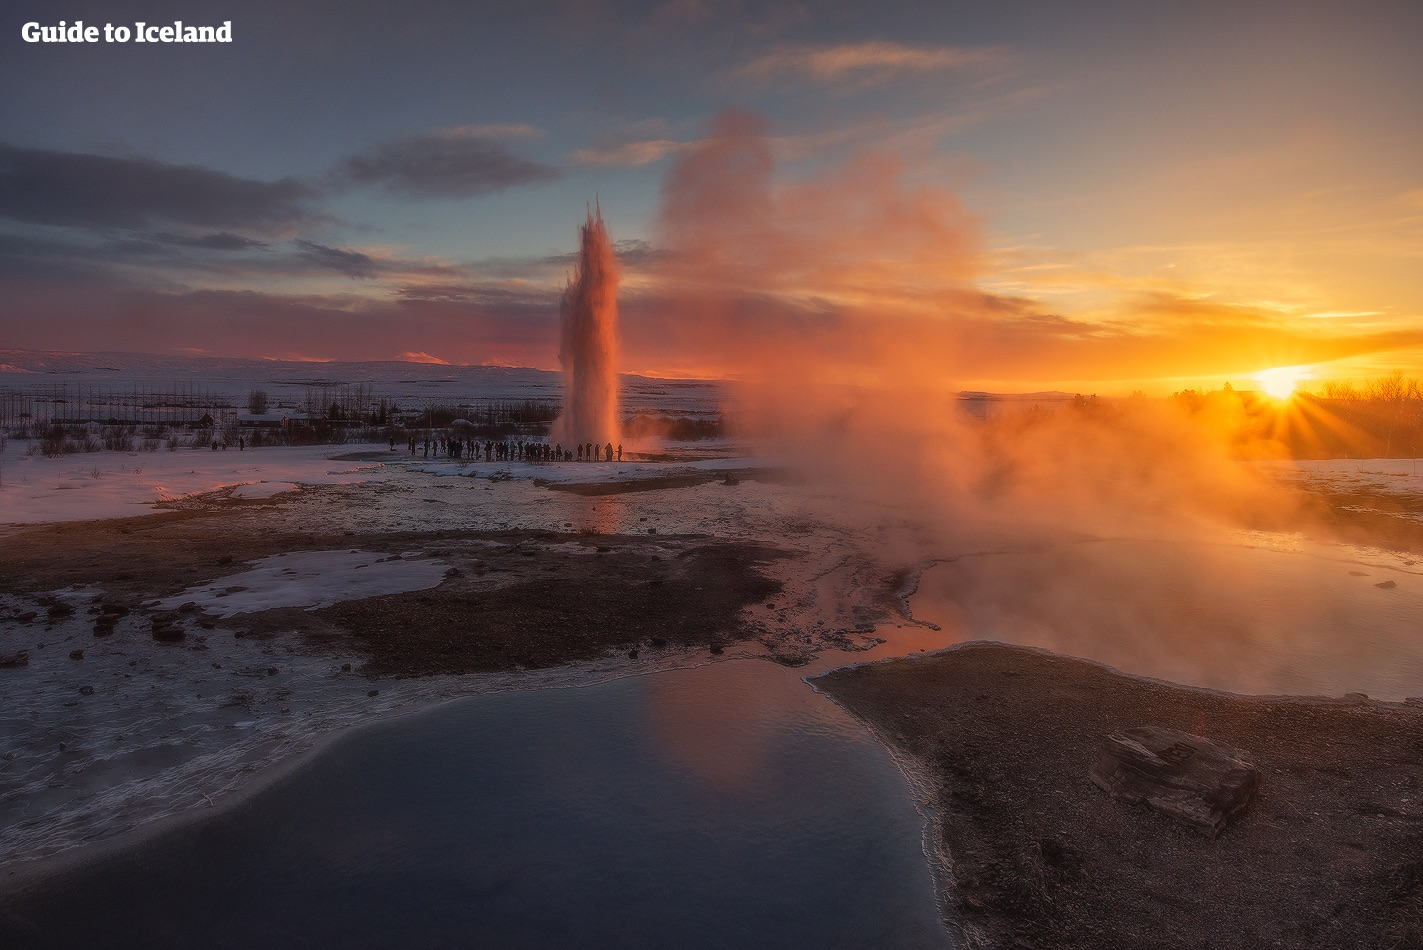 8 Day Northern Lights Winter Self Drive Tour of West and South Iceland with Ice Caving - day 3